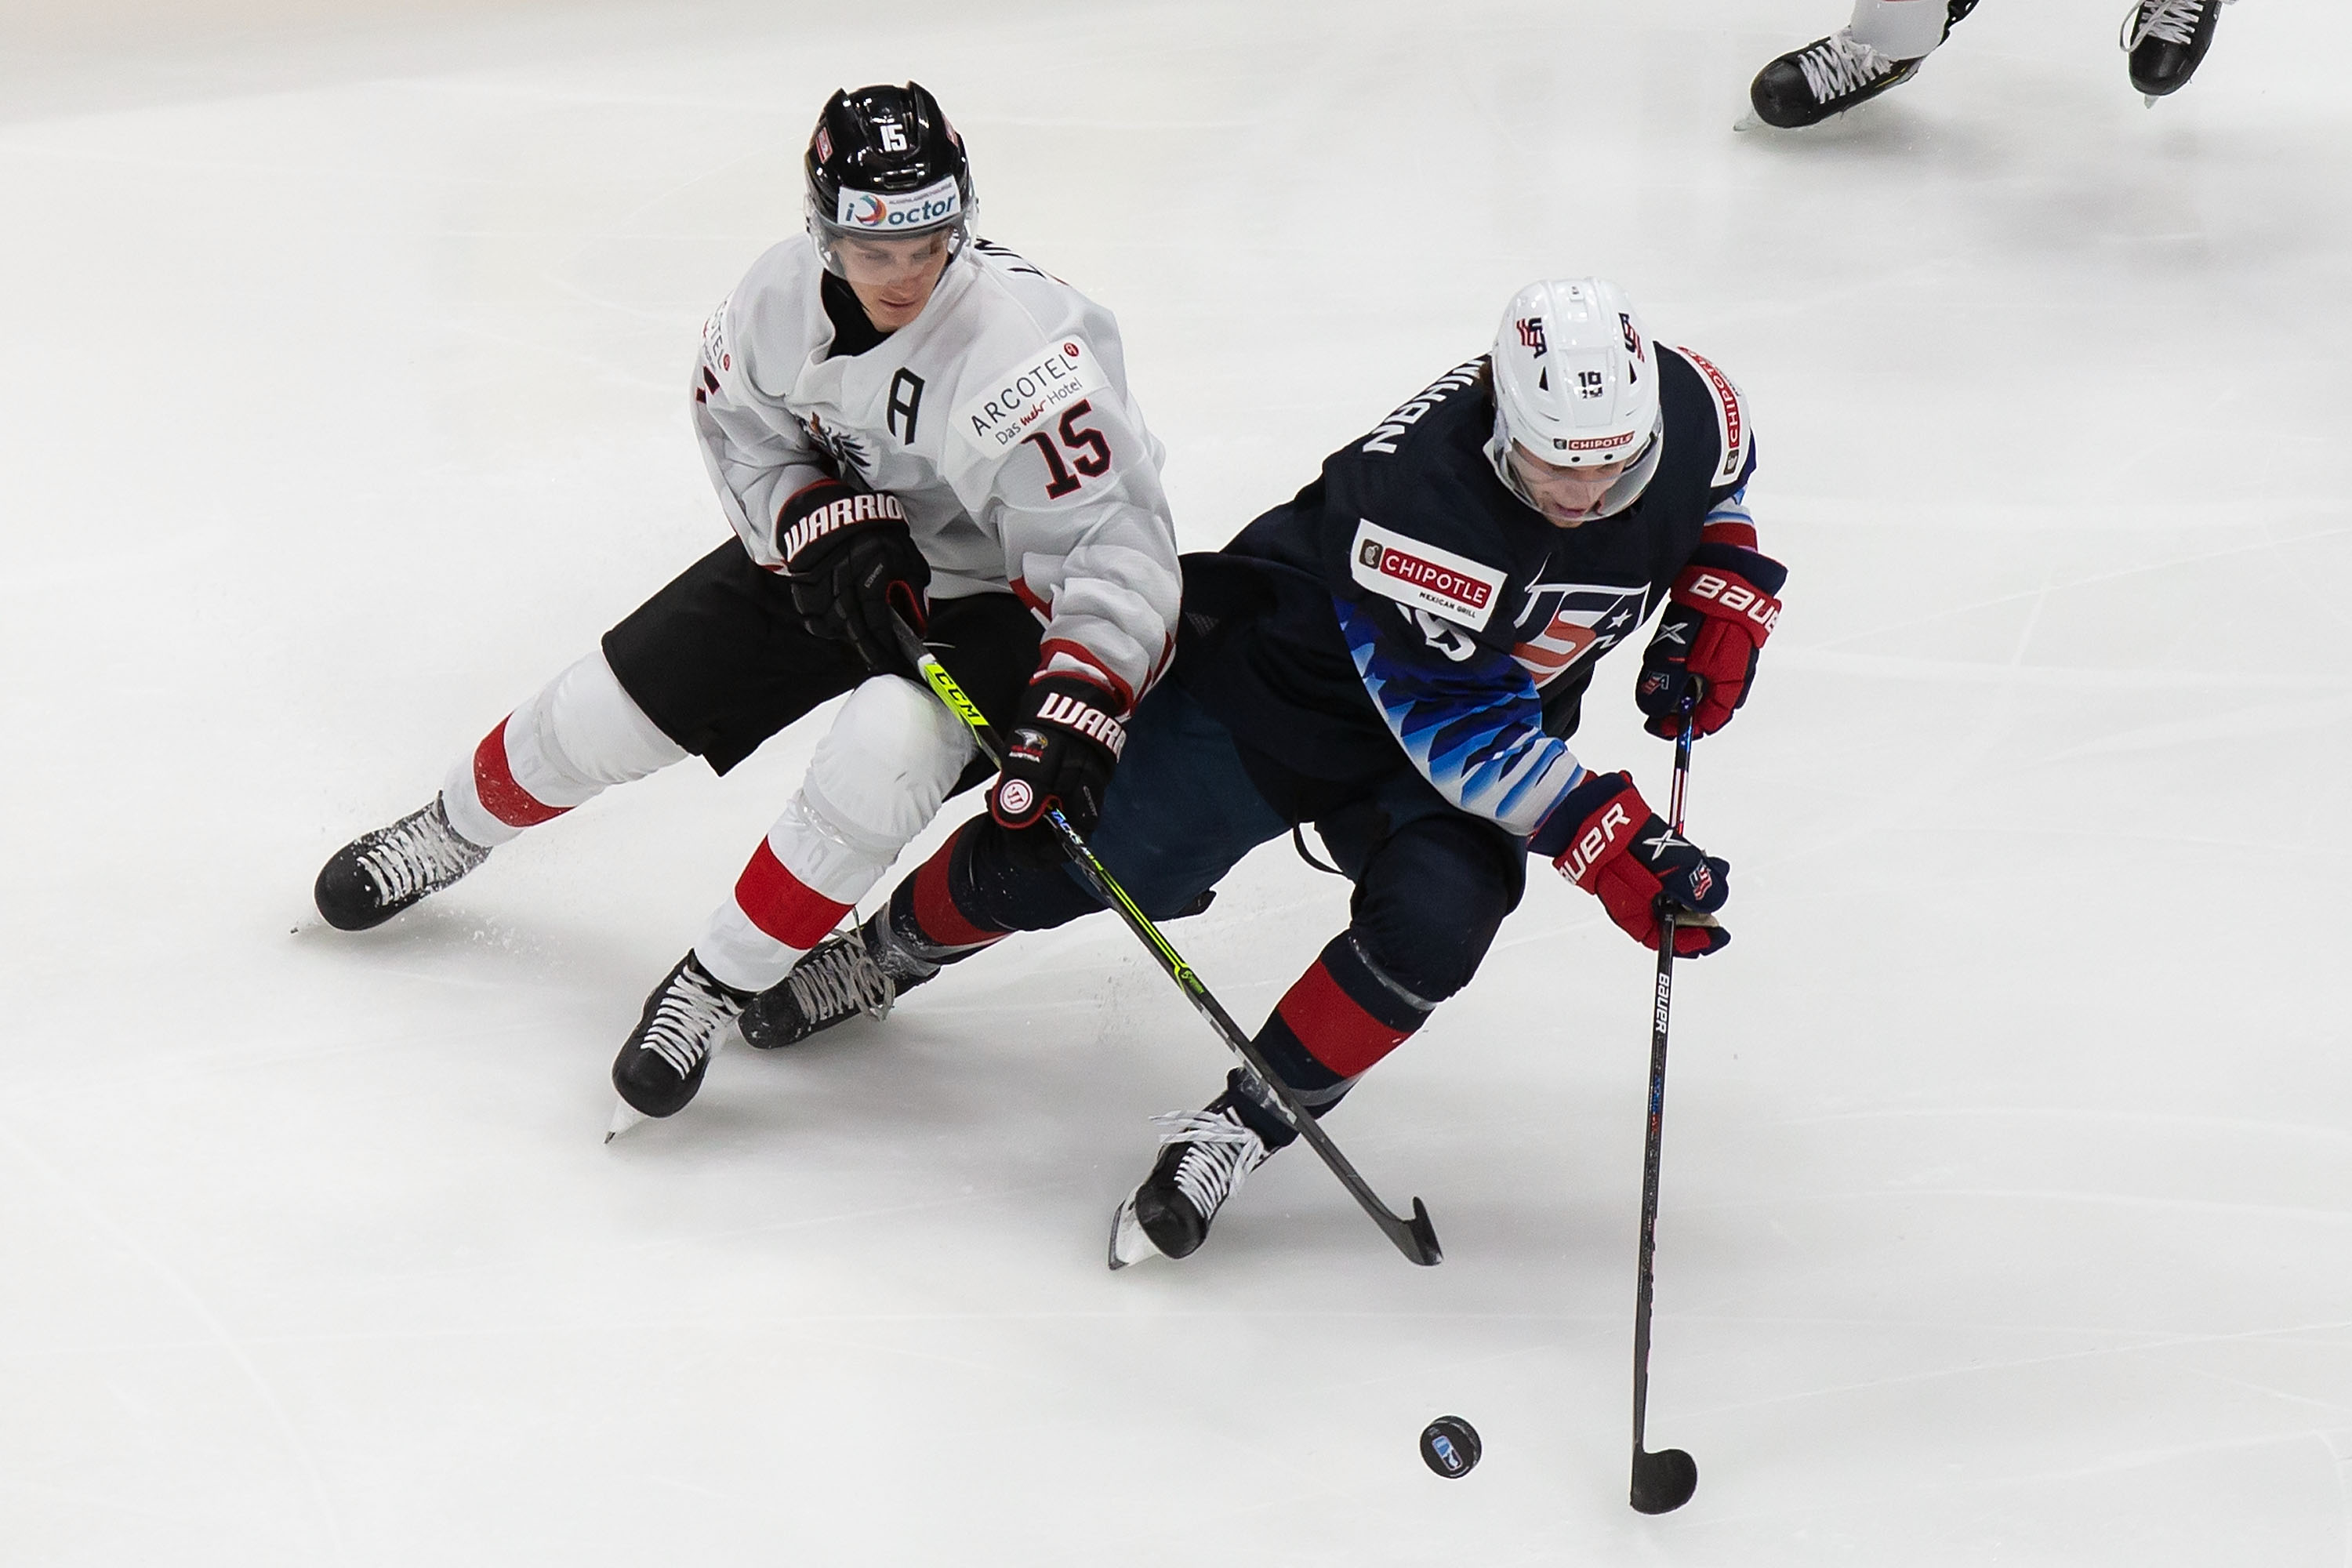 Patrick Moynihan #19 of the United States skates against Luis Lindner #15 of Austria during the 2021 IIHF World Junior Championship at Rogers Place on December 26, 2020 in Edmonton, Canada.